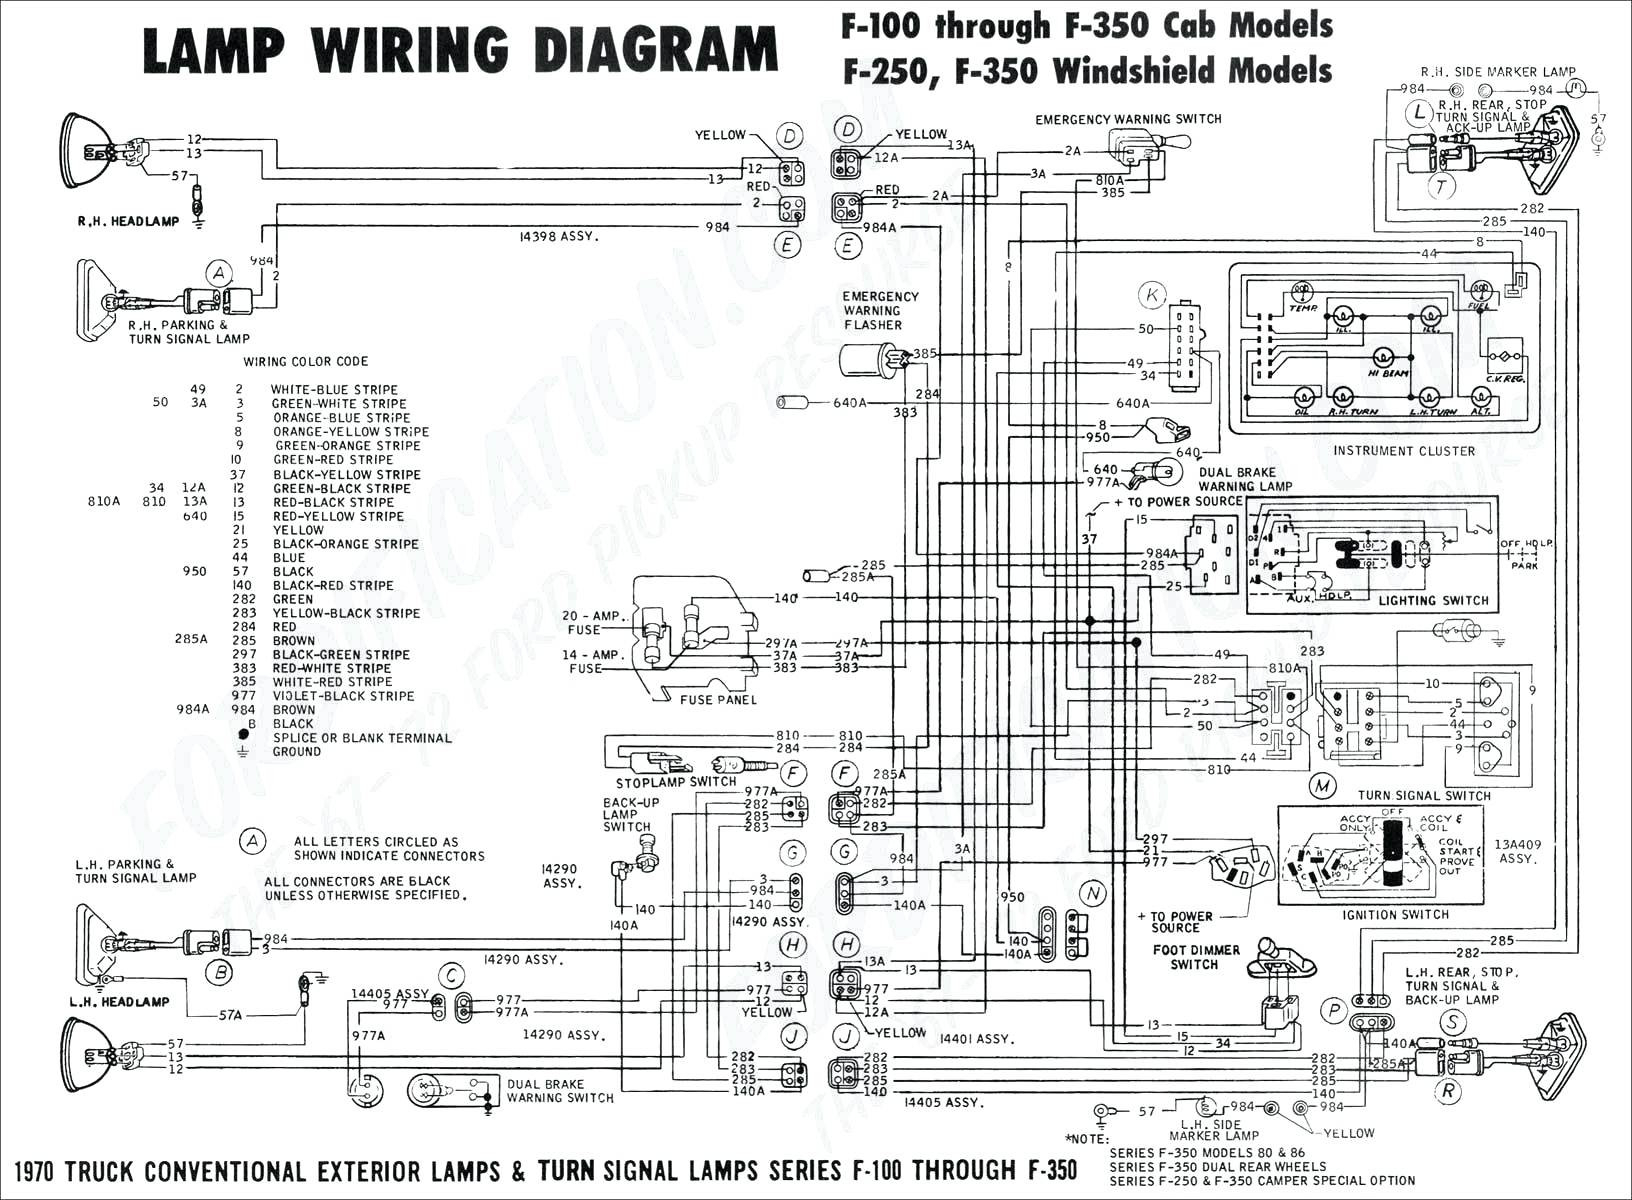 1995 ford f250 trailer wiring diagram Download-Ford F350 Trailer Wiring Diagram Trailer Wiring Diagram ford Ranger Inspirationa 2000 ford F250 Trailer 13-o